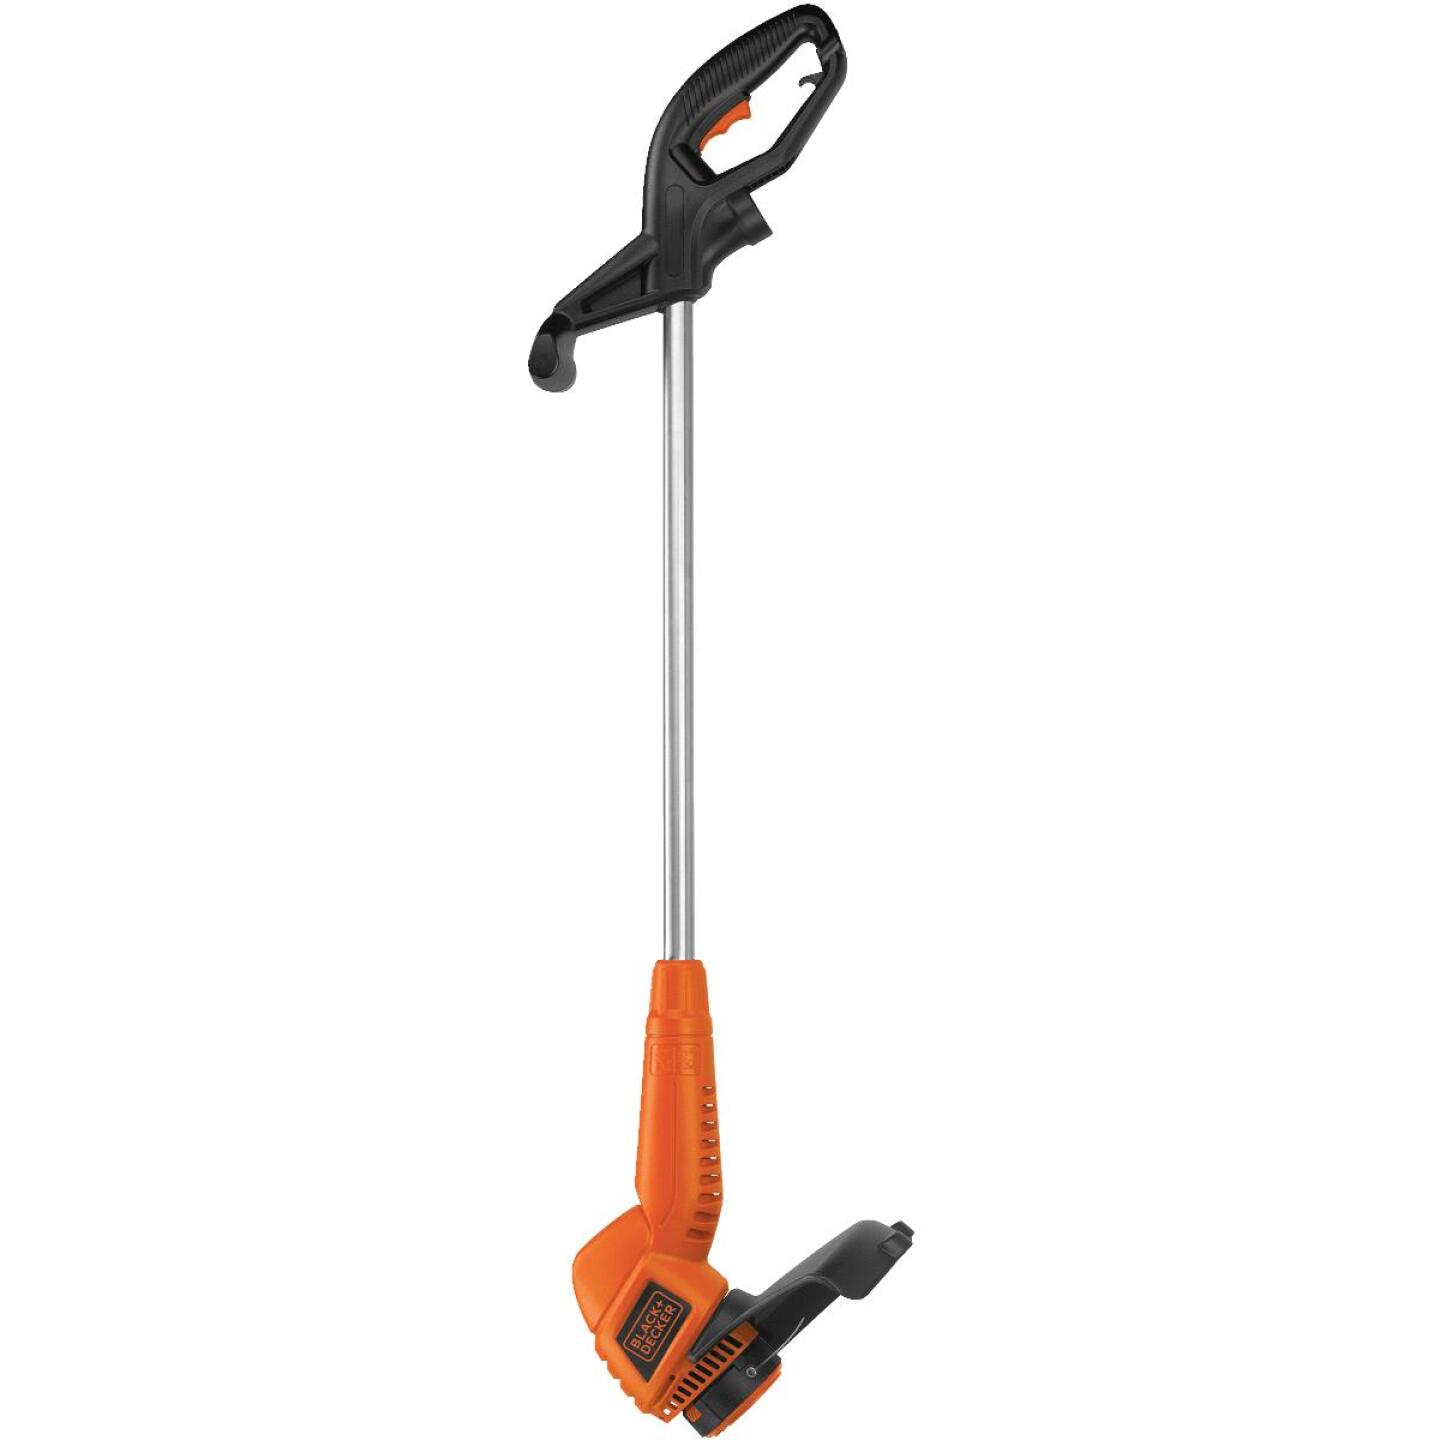 Black & Decker 13 In. 4.4-Amp Straight Shaft Corded Electric String Trimmer Edger Image 5